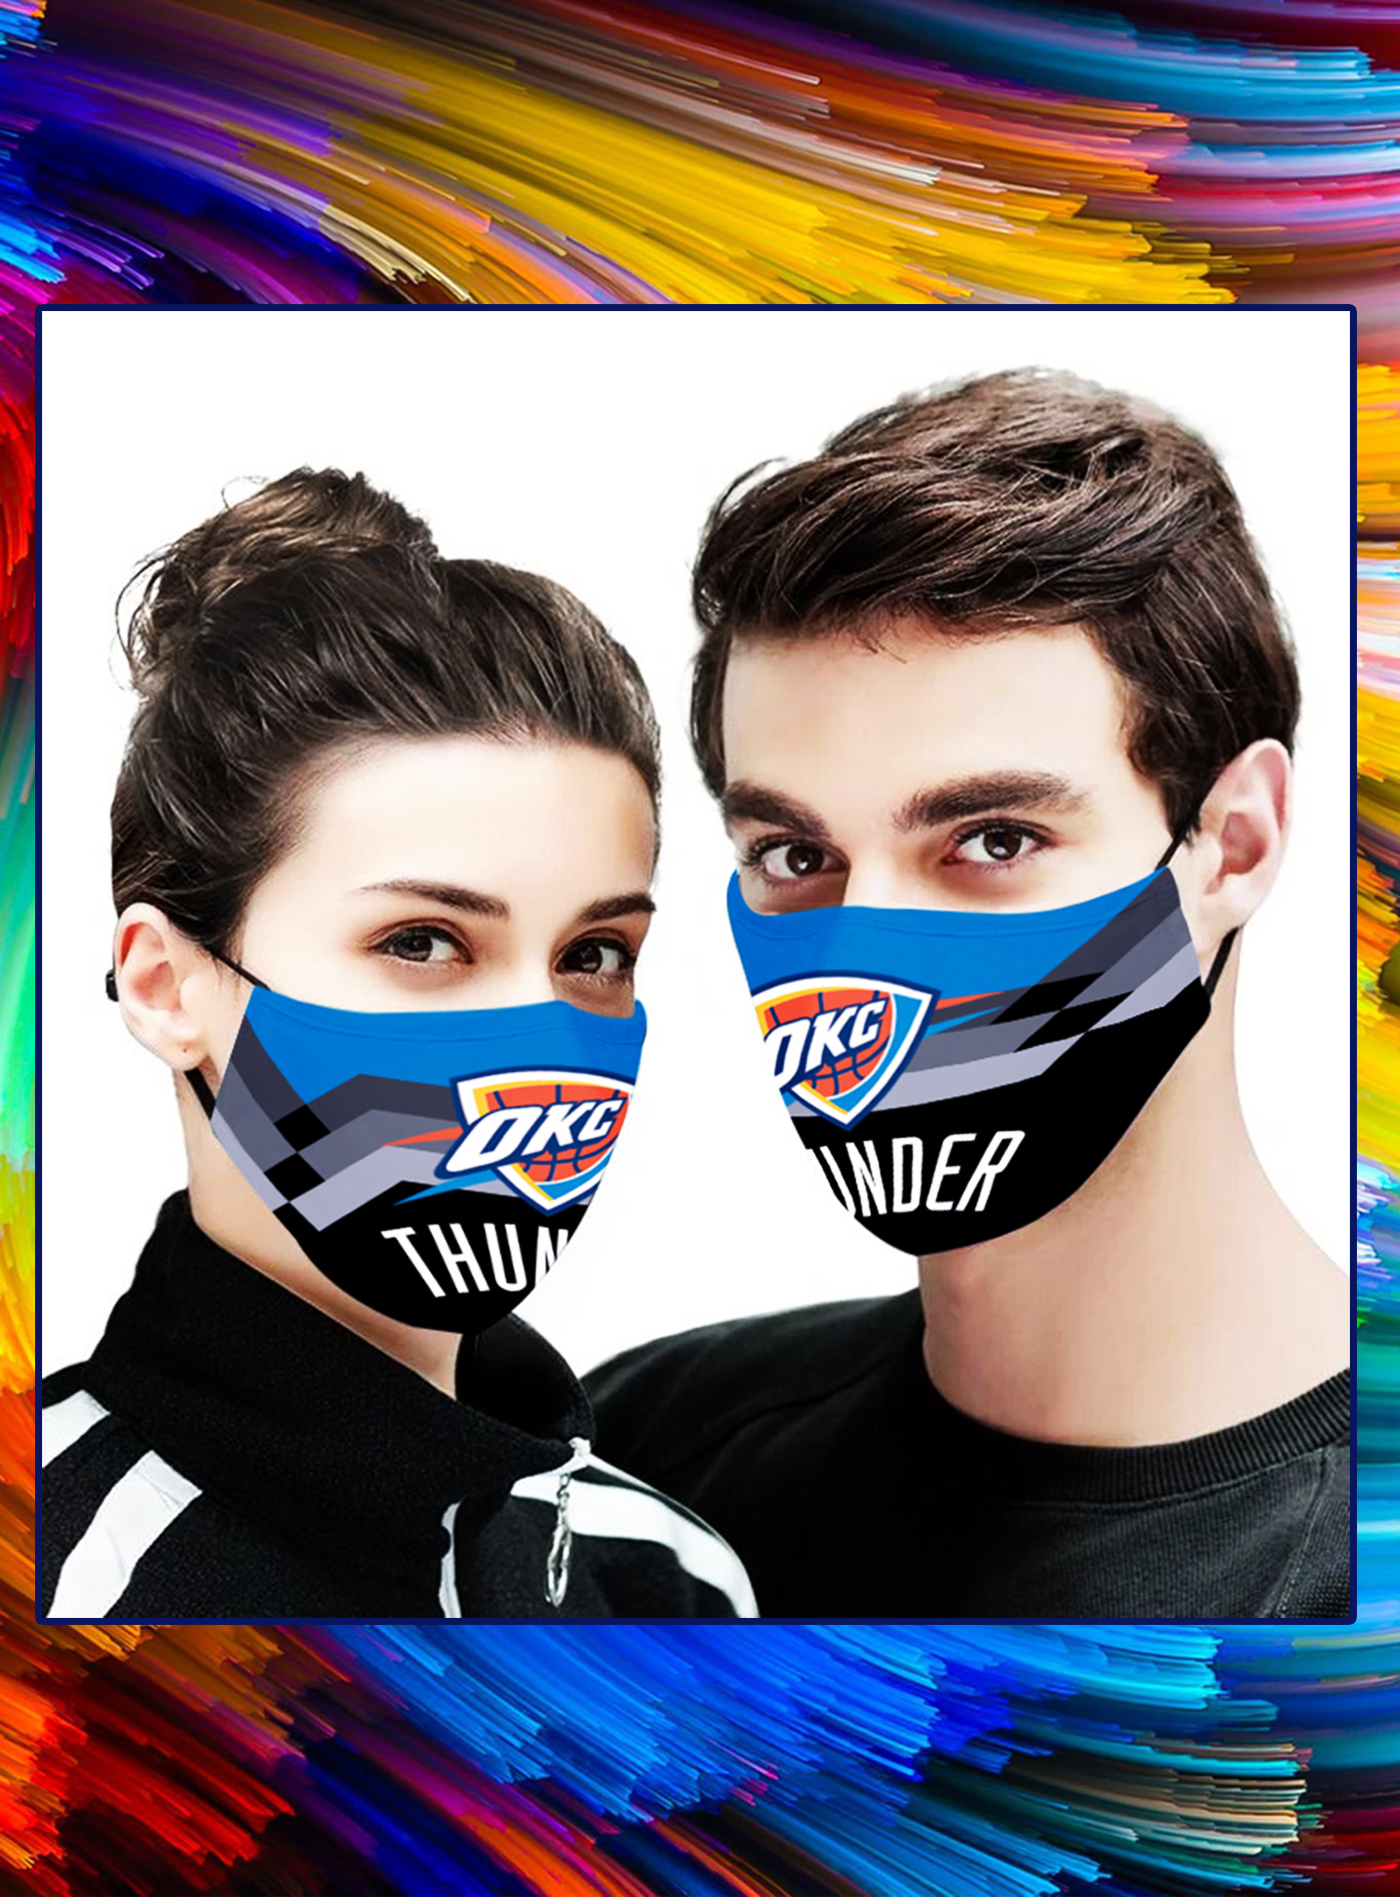 Oklahoma City Thunder NBA face mask - Picture 1